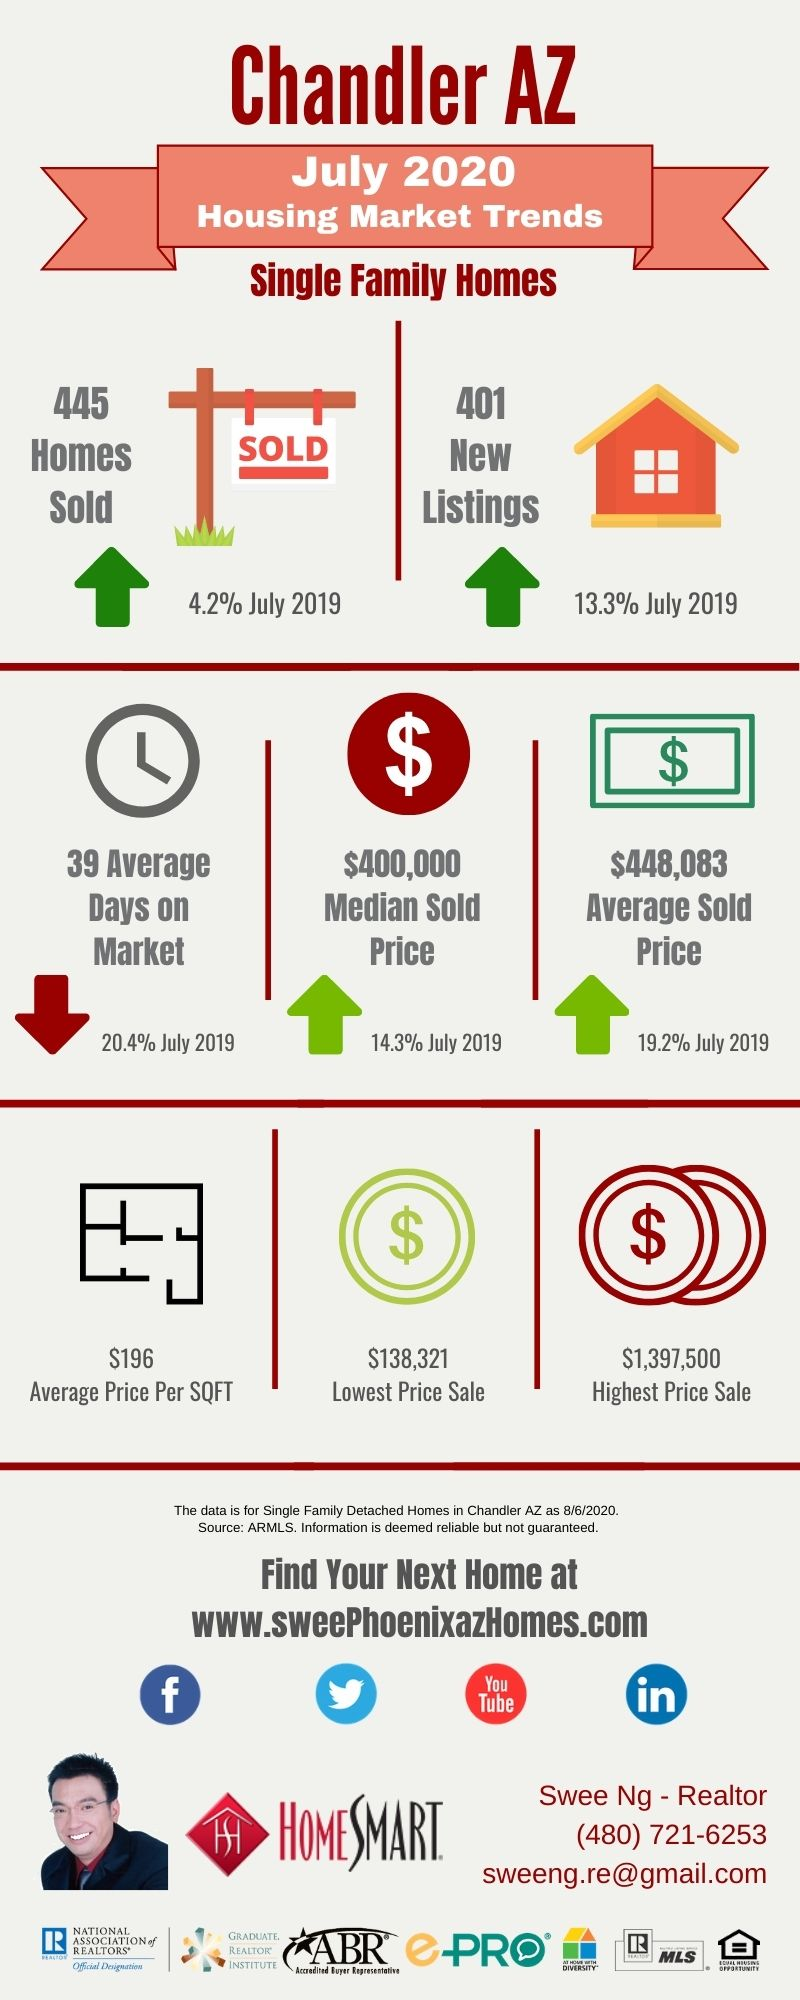 July 2020 Chandler AZ Housing Market Trends Report by Swee Ng, Real Estate and House Value